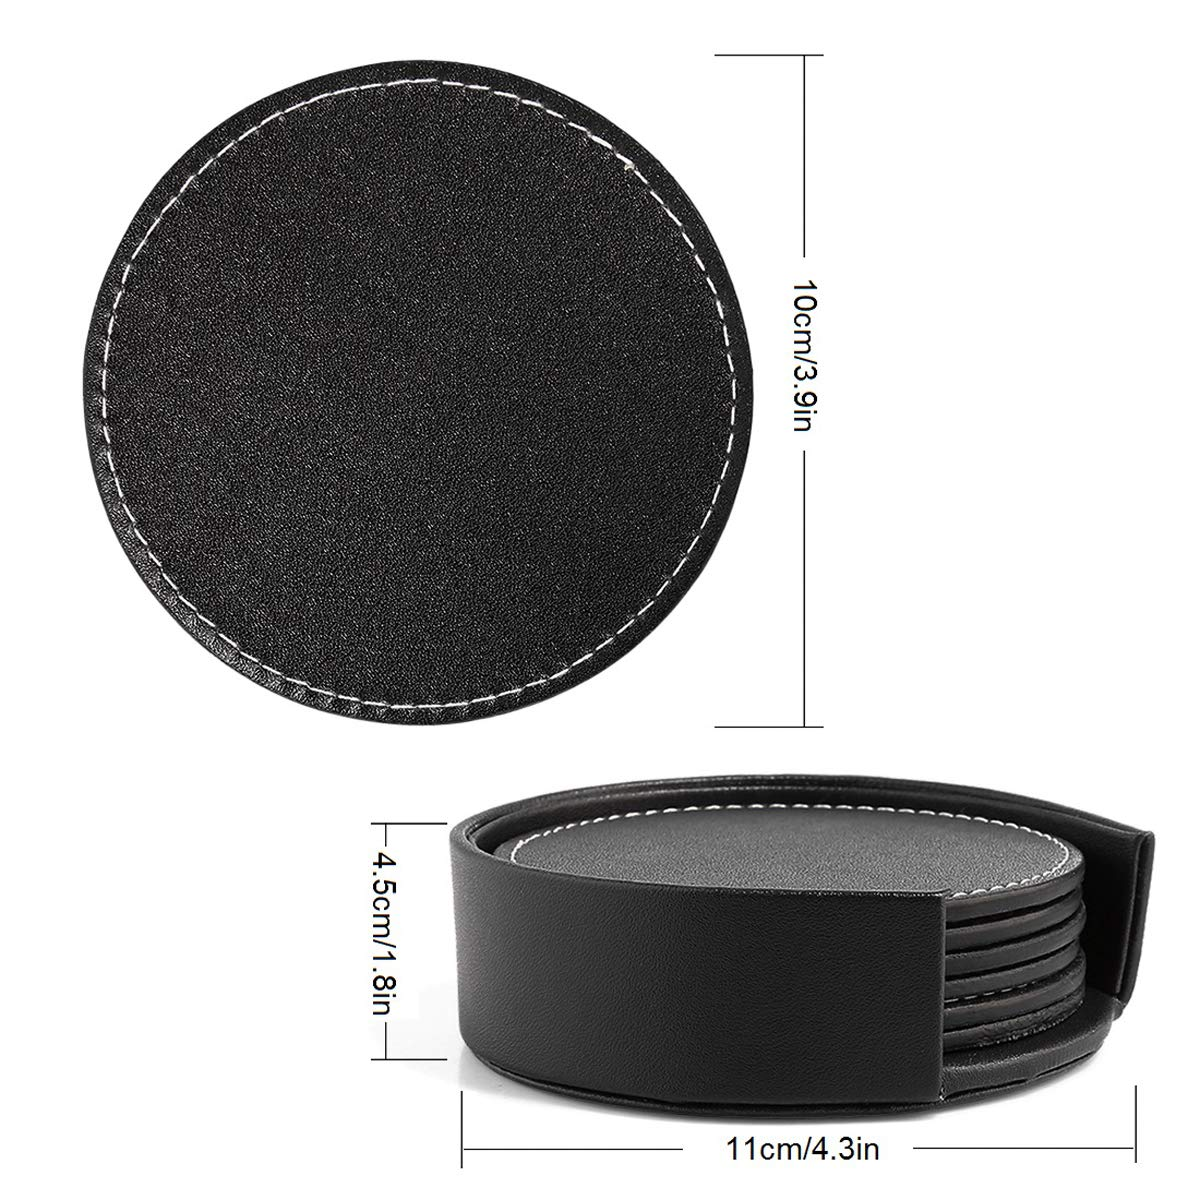 Marbe Granite Stone Tables Glass Wood KAMISAFE Drink Coasters Set of 6 with Holder Tabletop Protection for Any Table Type Soft PU Leather Coaster Fit Any Size of Drinking Glasses or Cup Mug KM round coaster